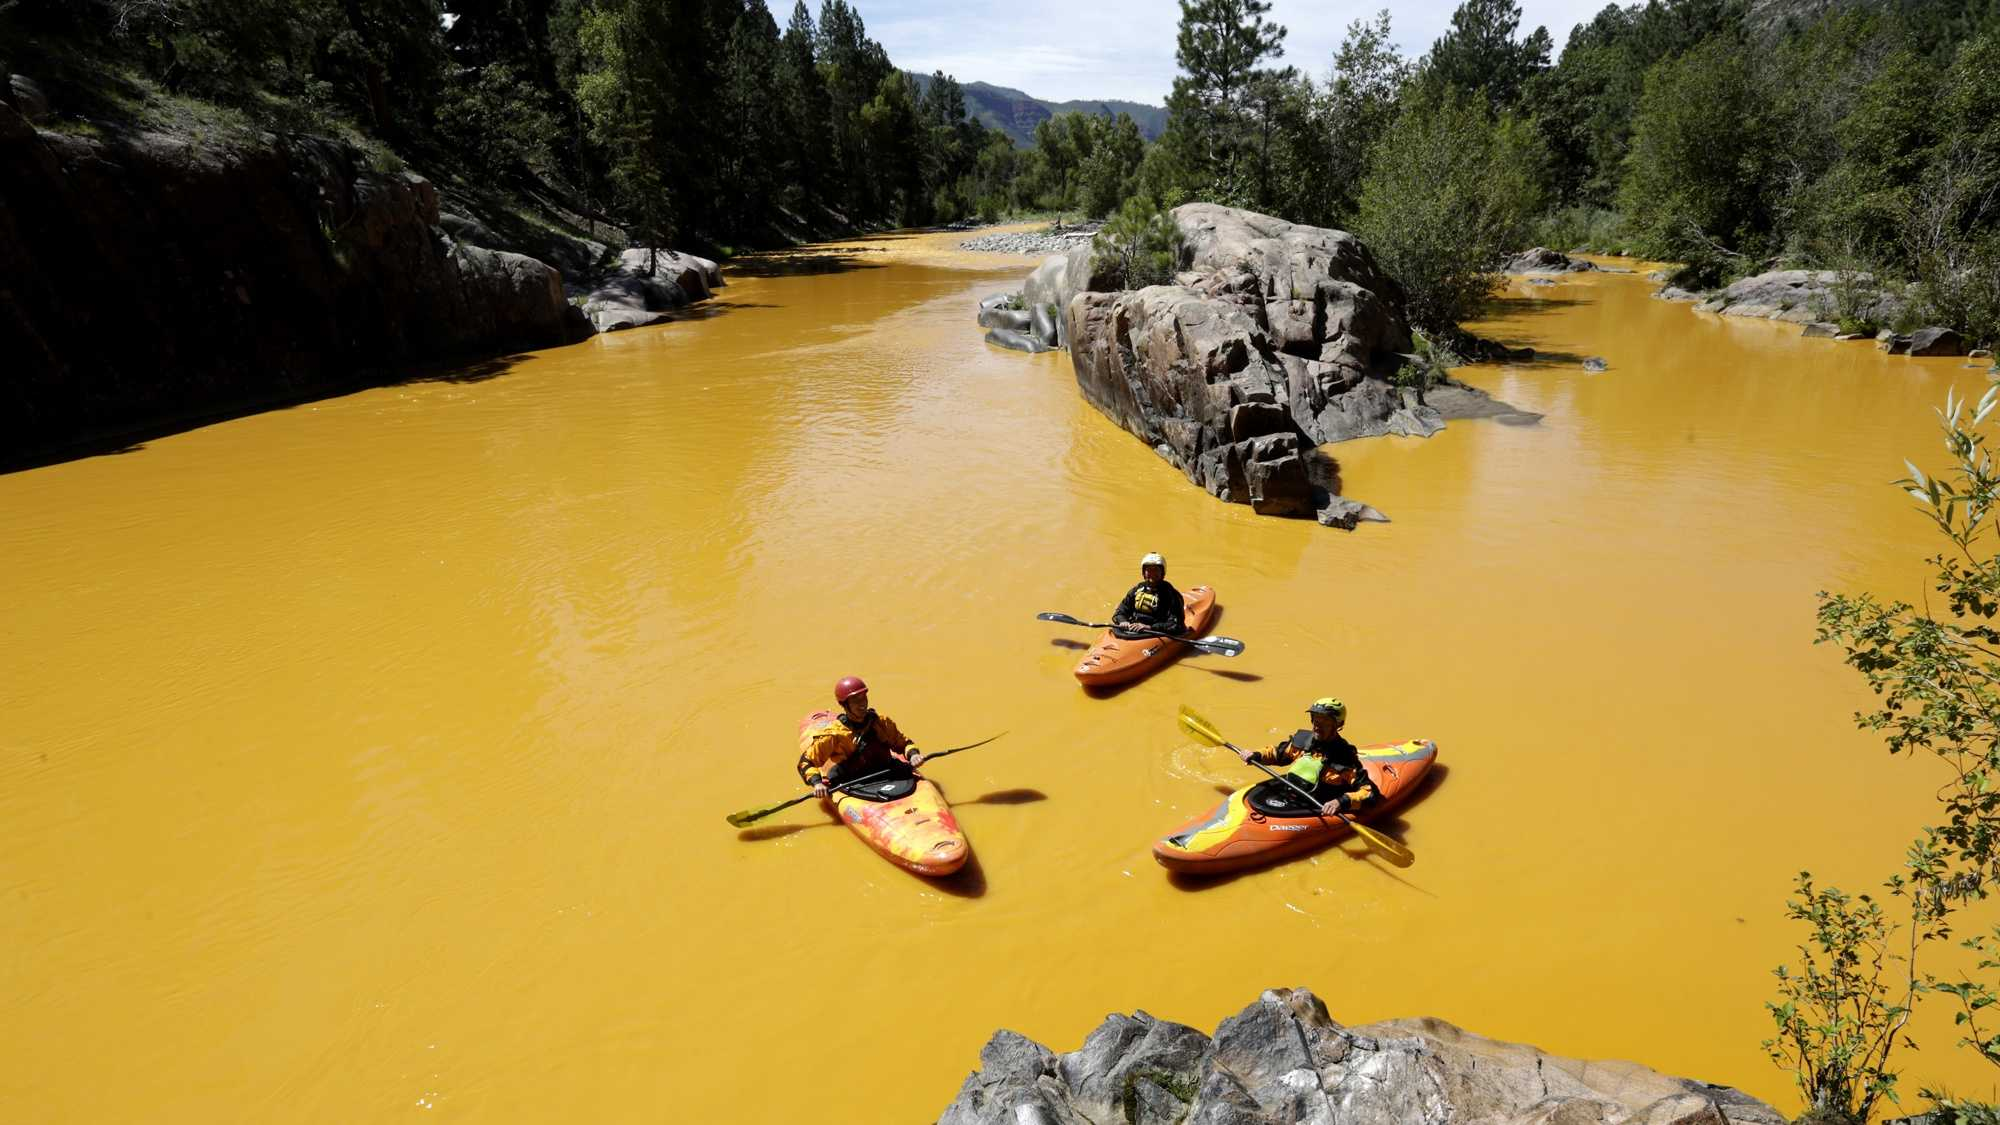 People kayak in the Animas River near Durango, Colo., Thursday, Aug. 6, 2015, in water colored from a mine waste spill. The U.S. Environmental Protection Agency said that a cleanup team was working with heavy equipment Wednesday to secure an entrance to the Gold King Mine. Workers instead released an estimated 1 million gallons of mine waste into Cement Creek, which flows into the Animas River.